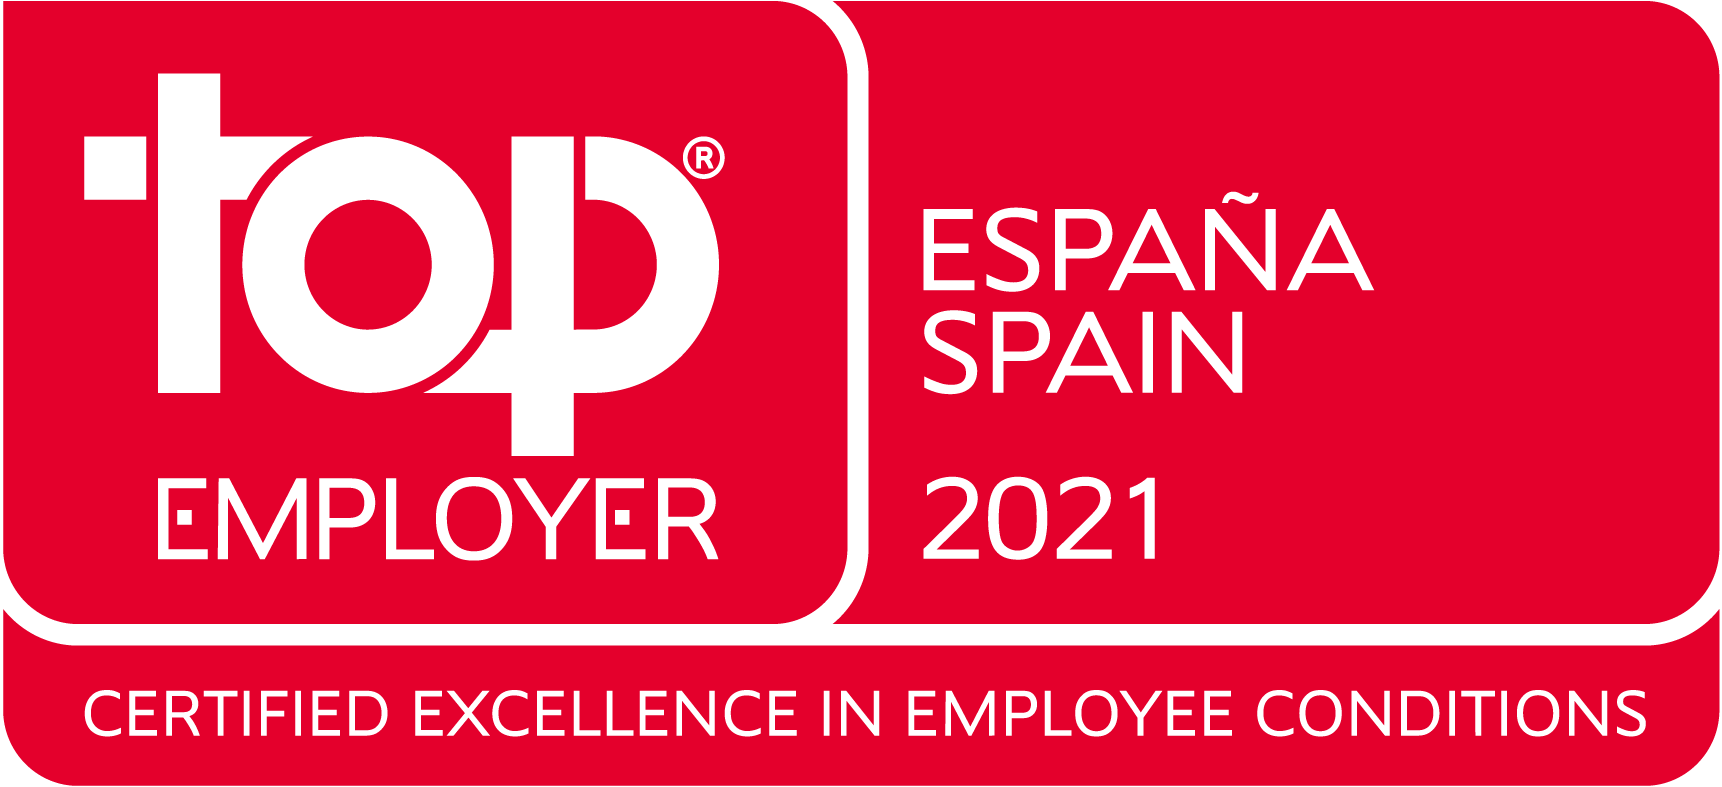 Top Employer Spain 2021